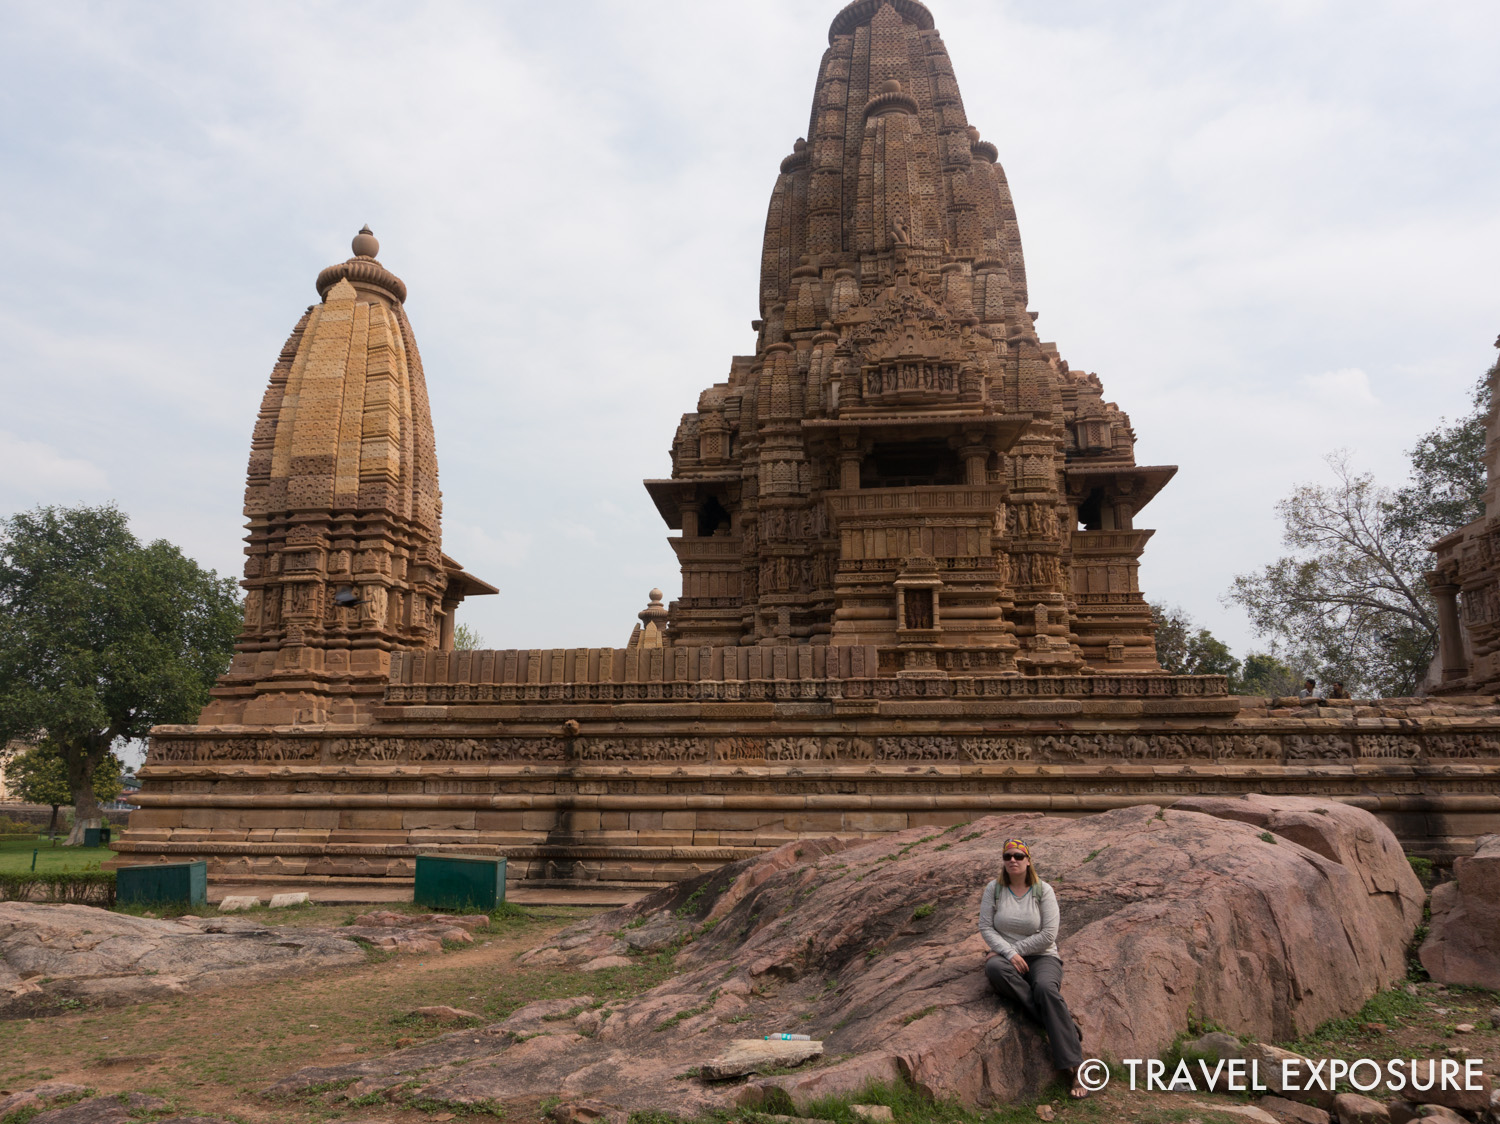 The   Hindu and Jain   temples at Khajuraho. Most were built between 950 and 1050. They are beautifully   decorated   and   famous for their erotic sculptures depicting scenes from the Kama Sutra.